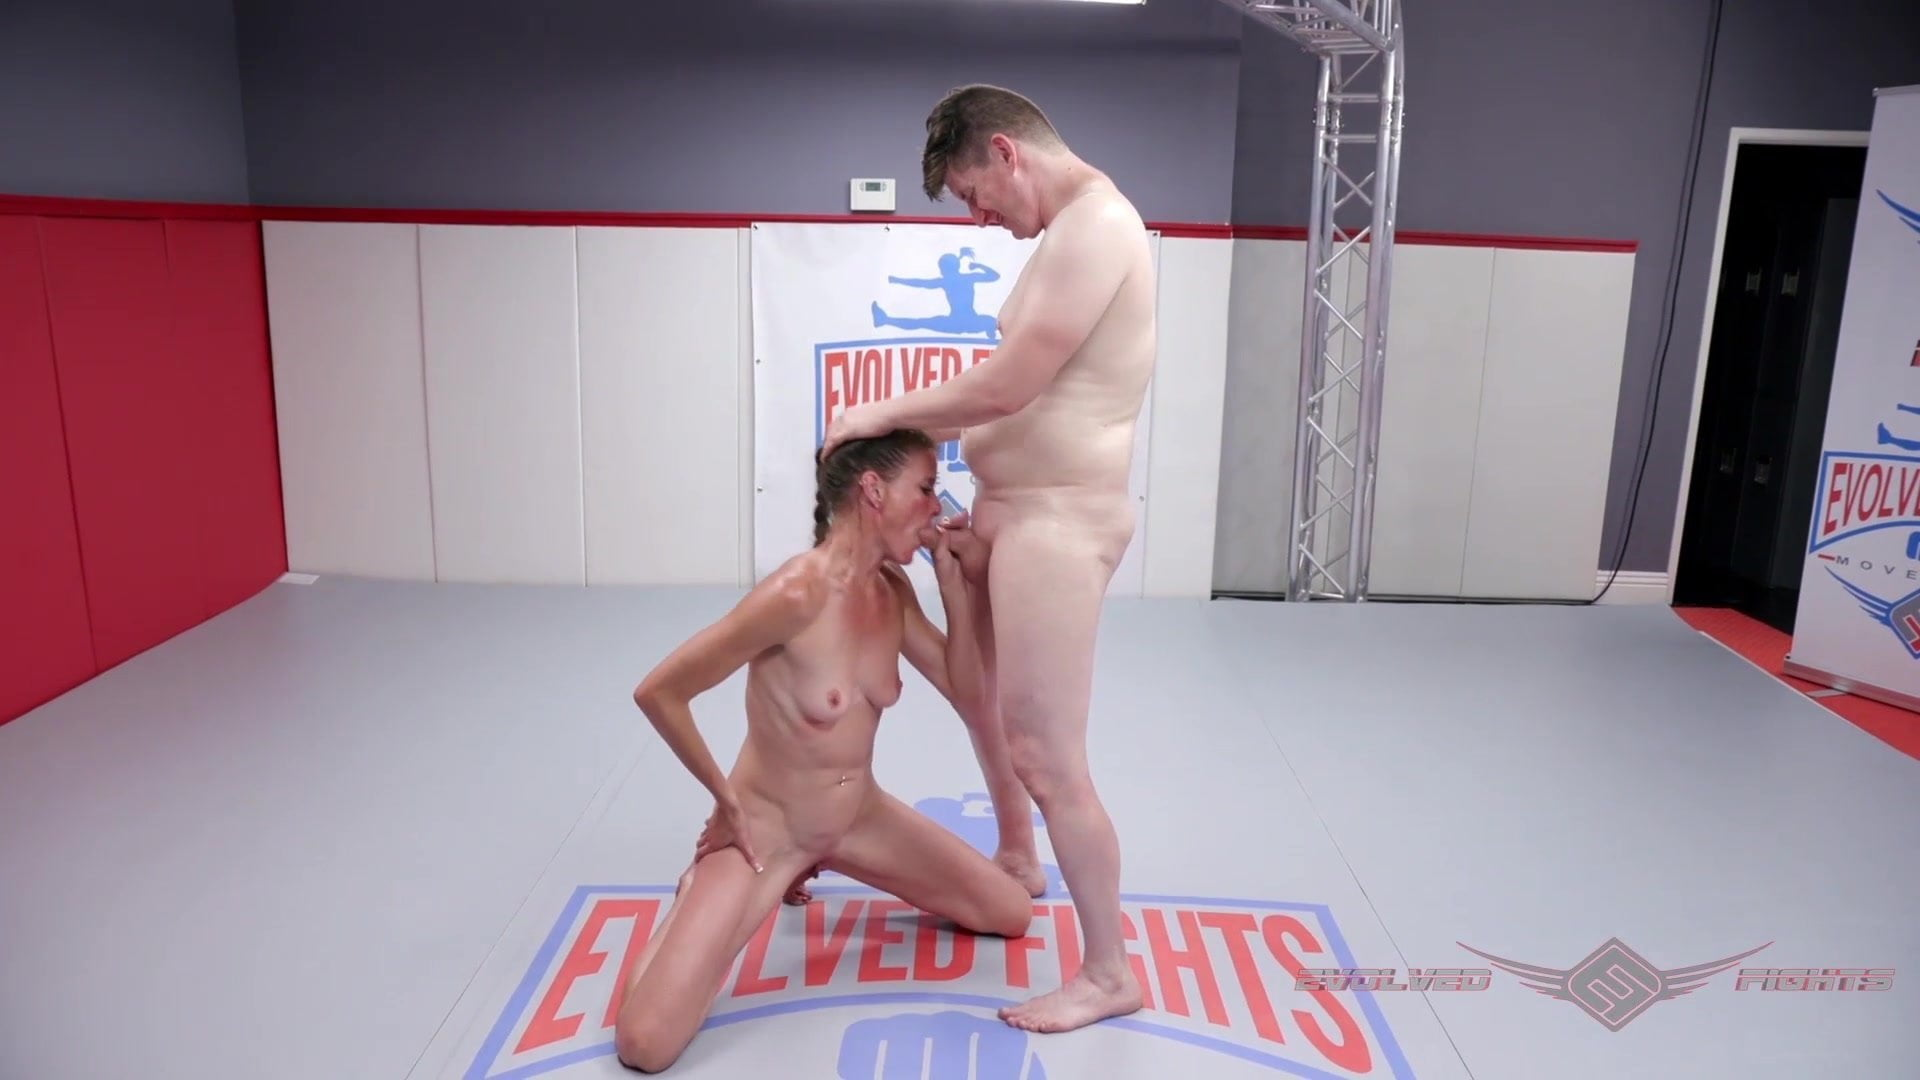 Topless Rough Naked Wrestling Gif